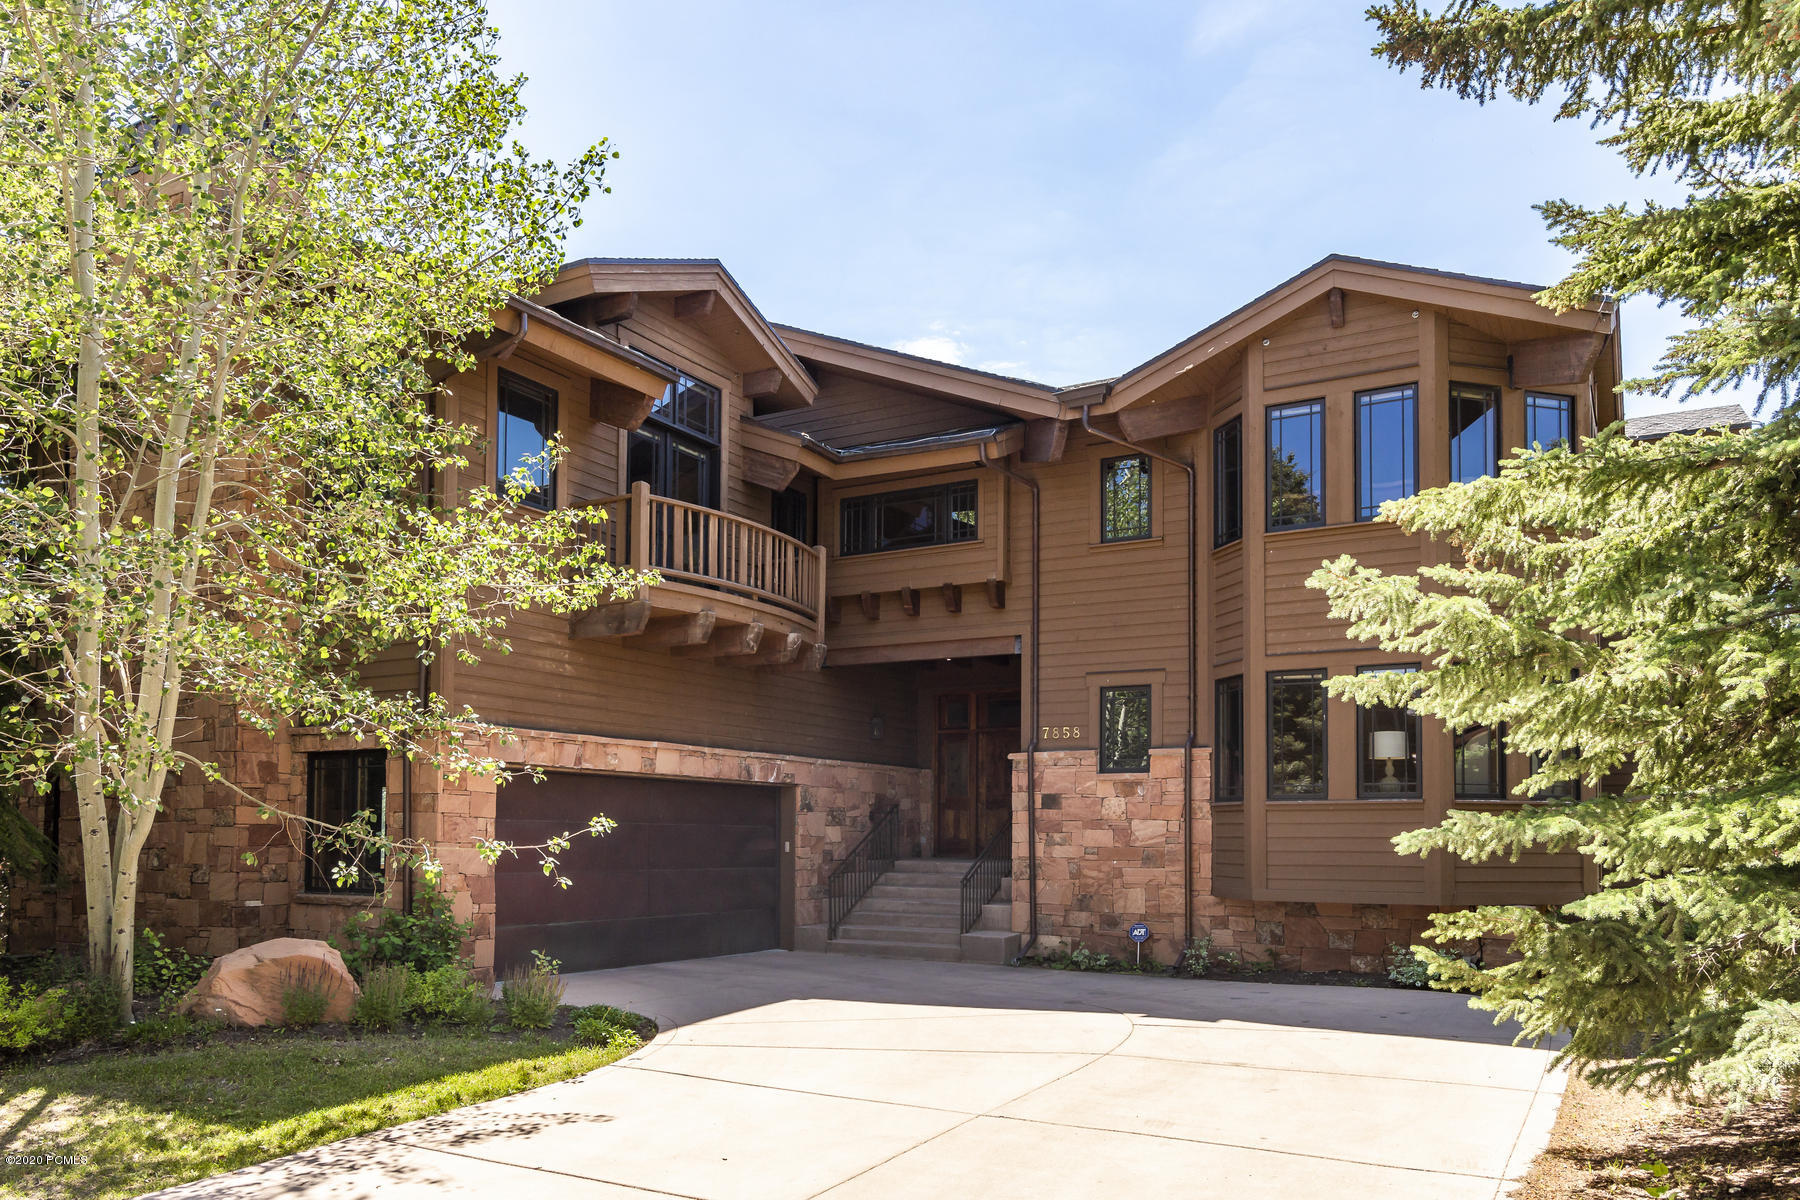 7858 Aster Lane, Park City, Utah 84060, 5 Bedrooms Bedrooms, ,7 BathroomsBathrooms,Single Family,For Sale,Aster,12002811